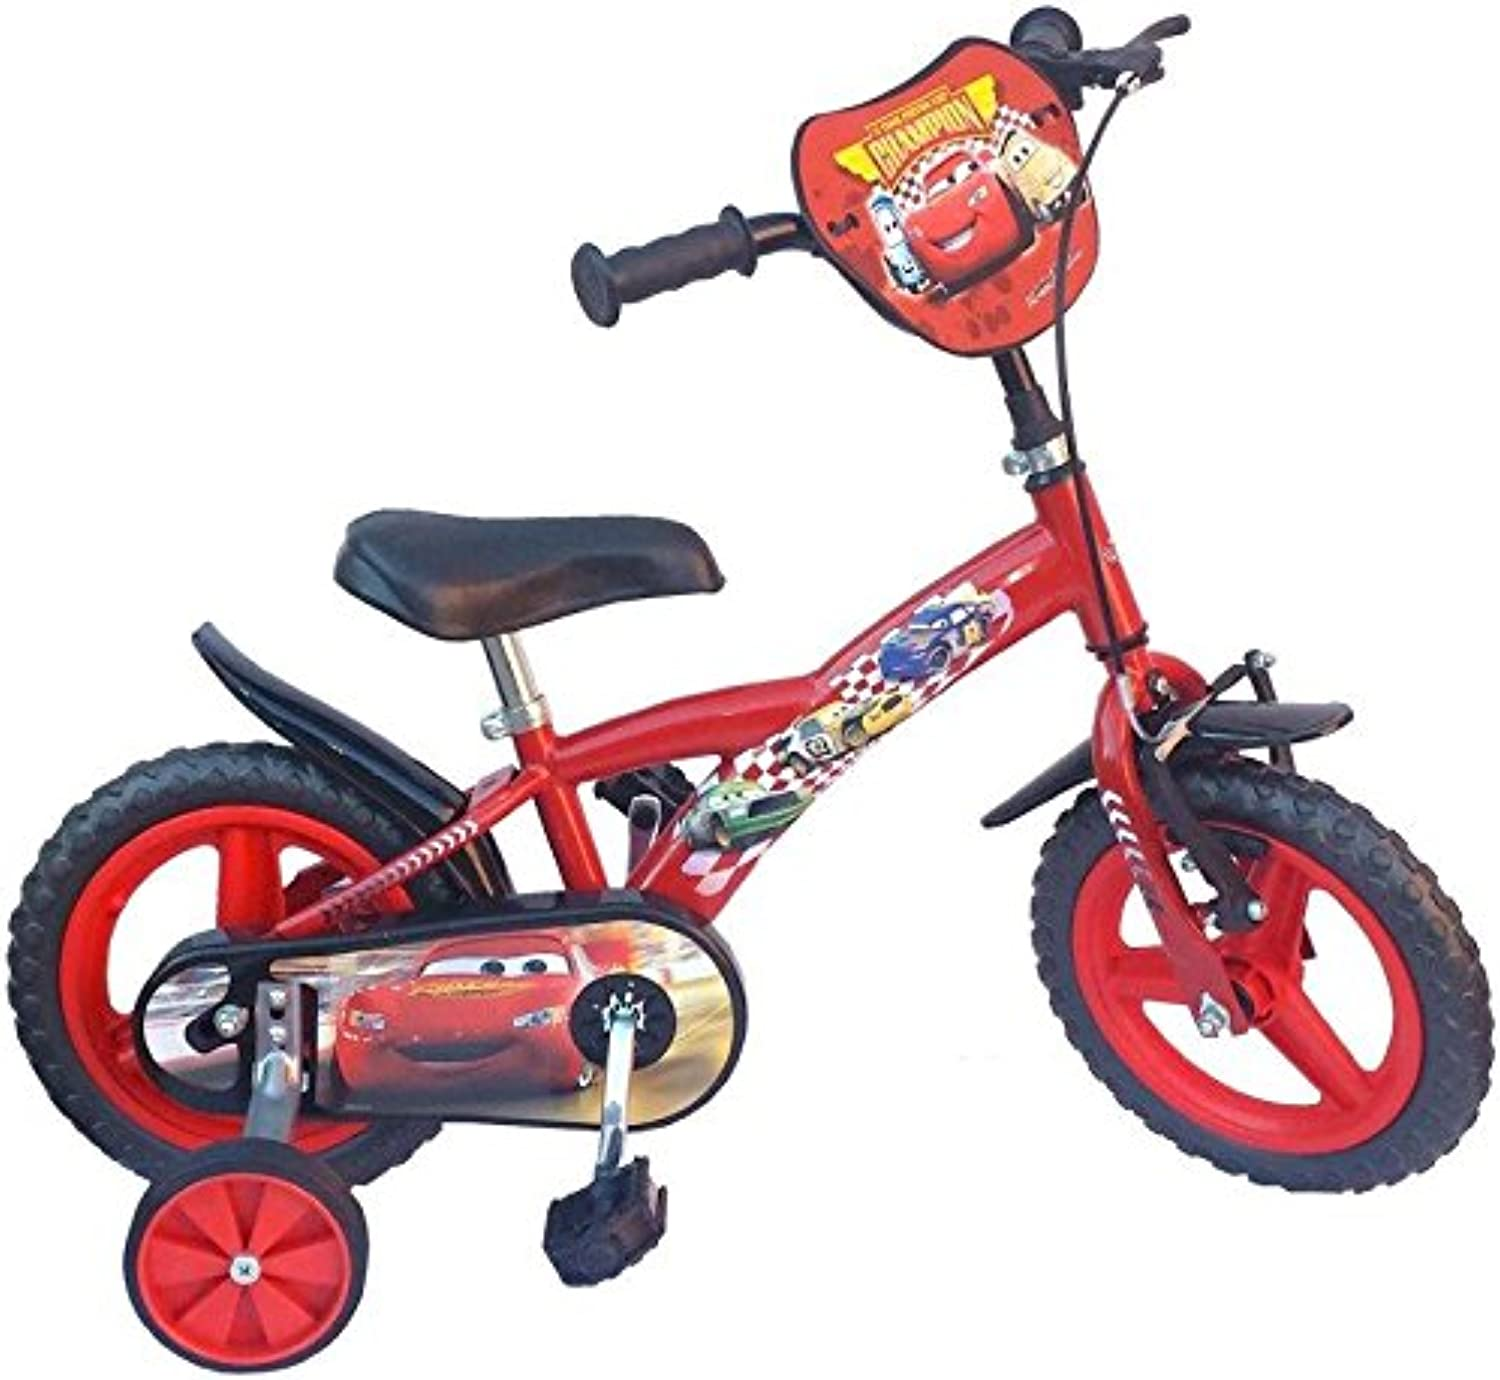 TOIMS Cars Bike Bike Kinder 12  - Alter 3 4 Jahre